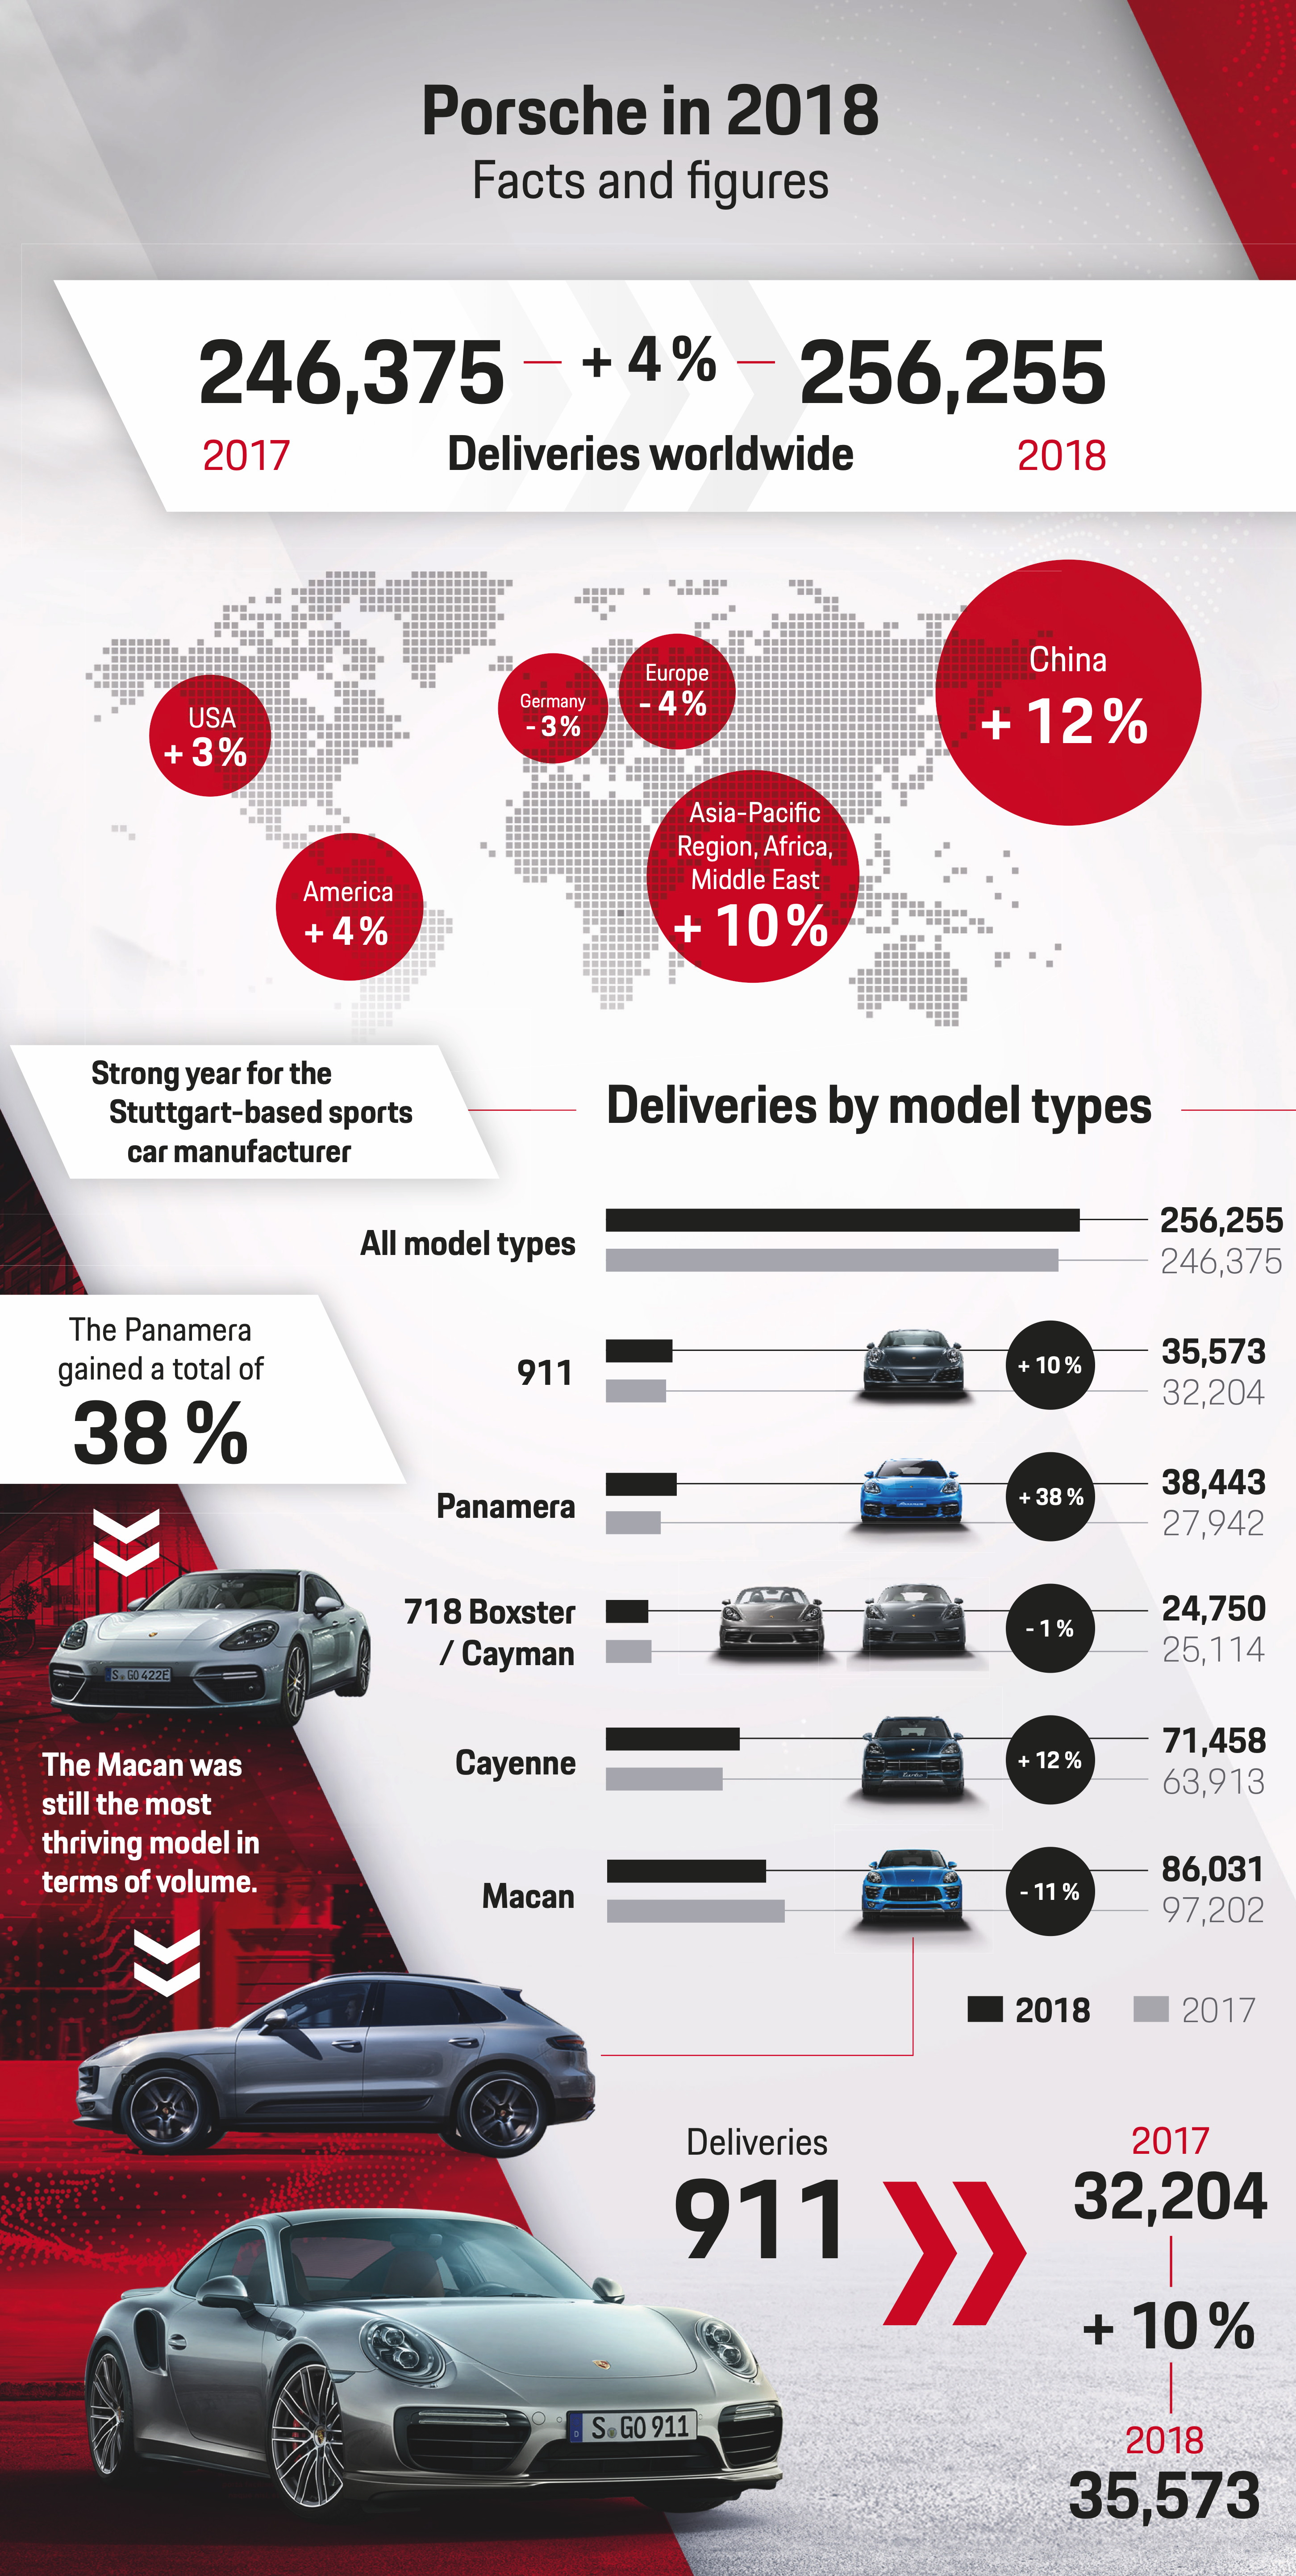 Deliveries Porsche in 2018, infographic, 2019, Porsche AG